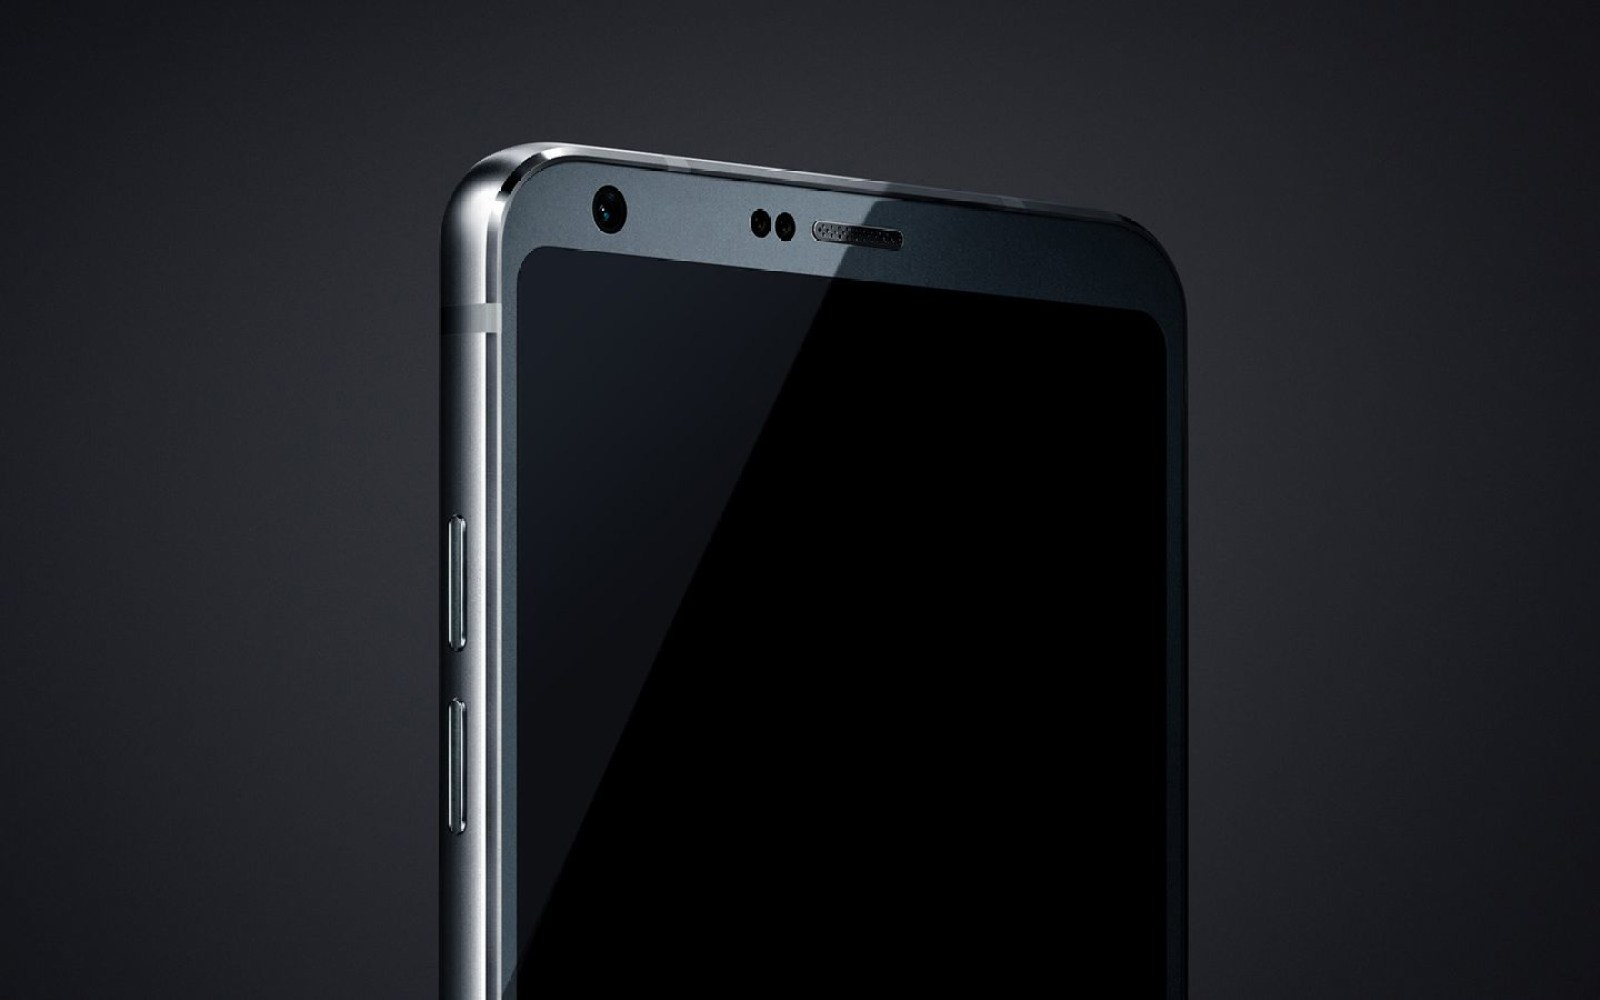 LG confirms 'FullVision' 5.7-inch display for LG G6, offers a peek at new LG UX 6.0